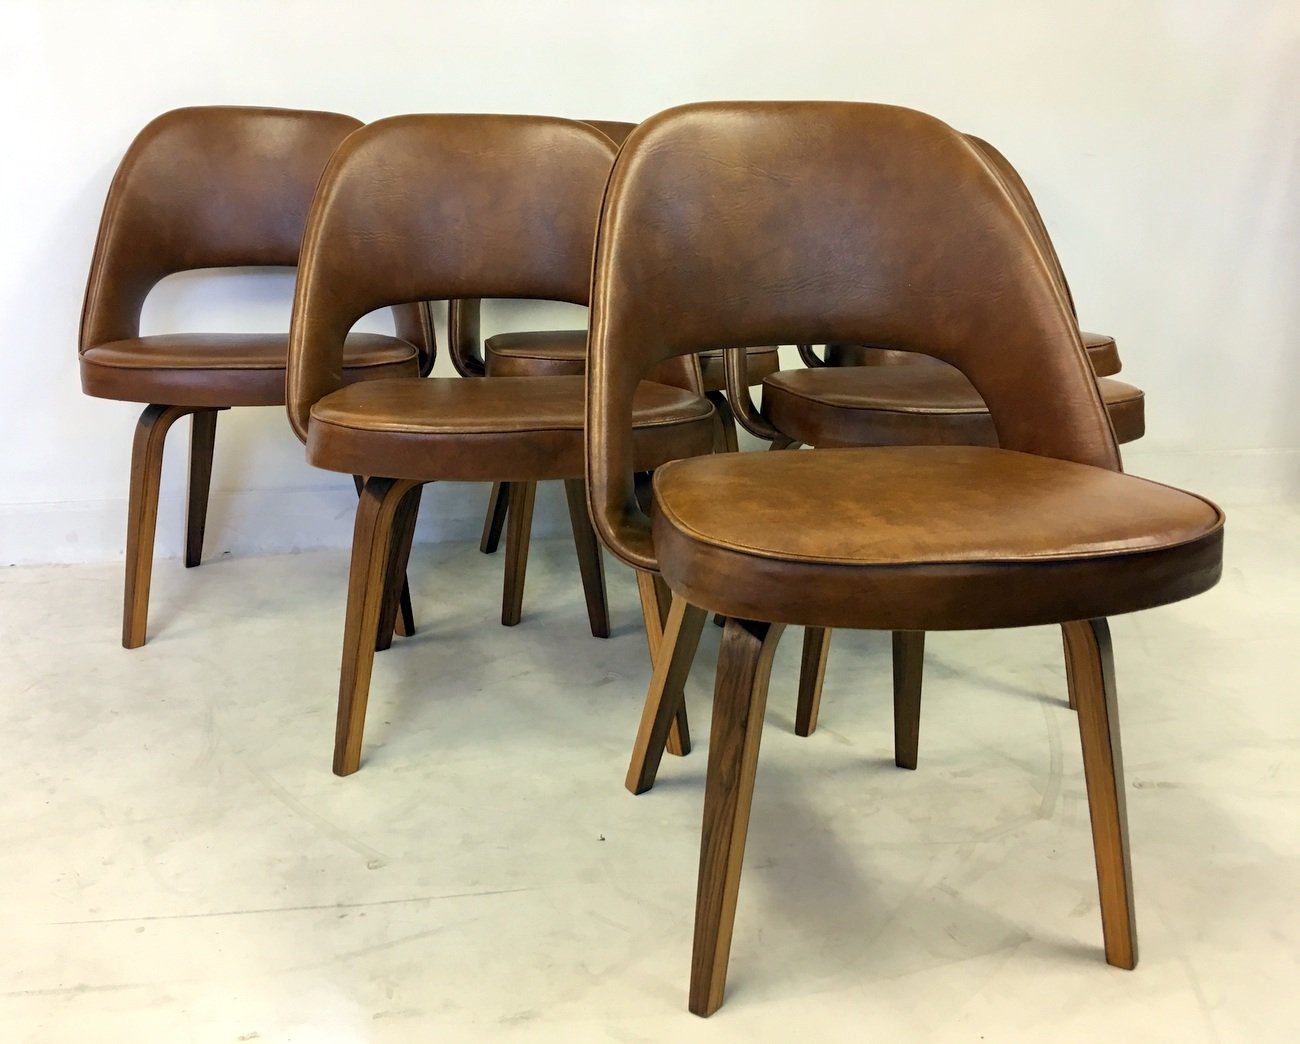 vintage executive chairs by eero saarinen for knoll set of 6